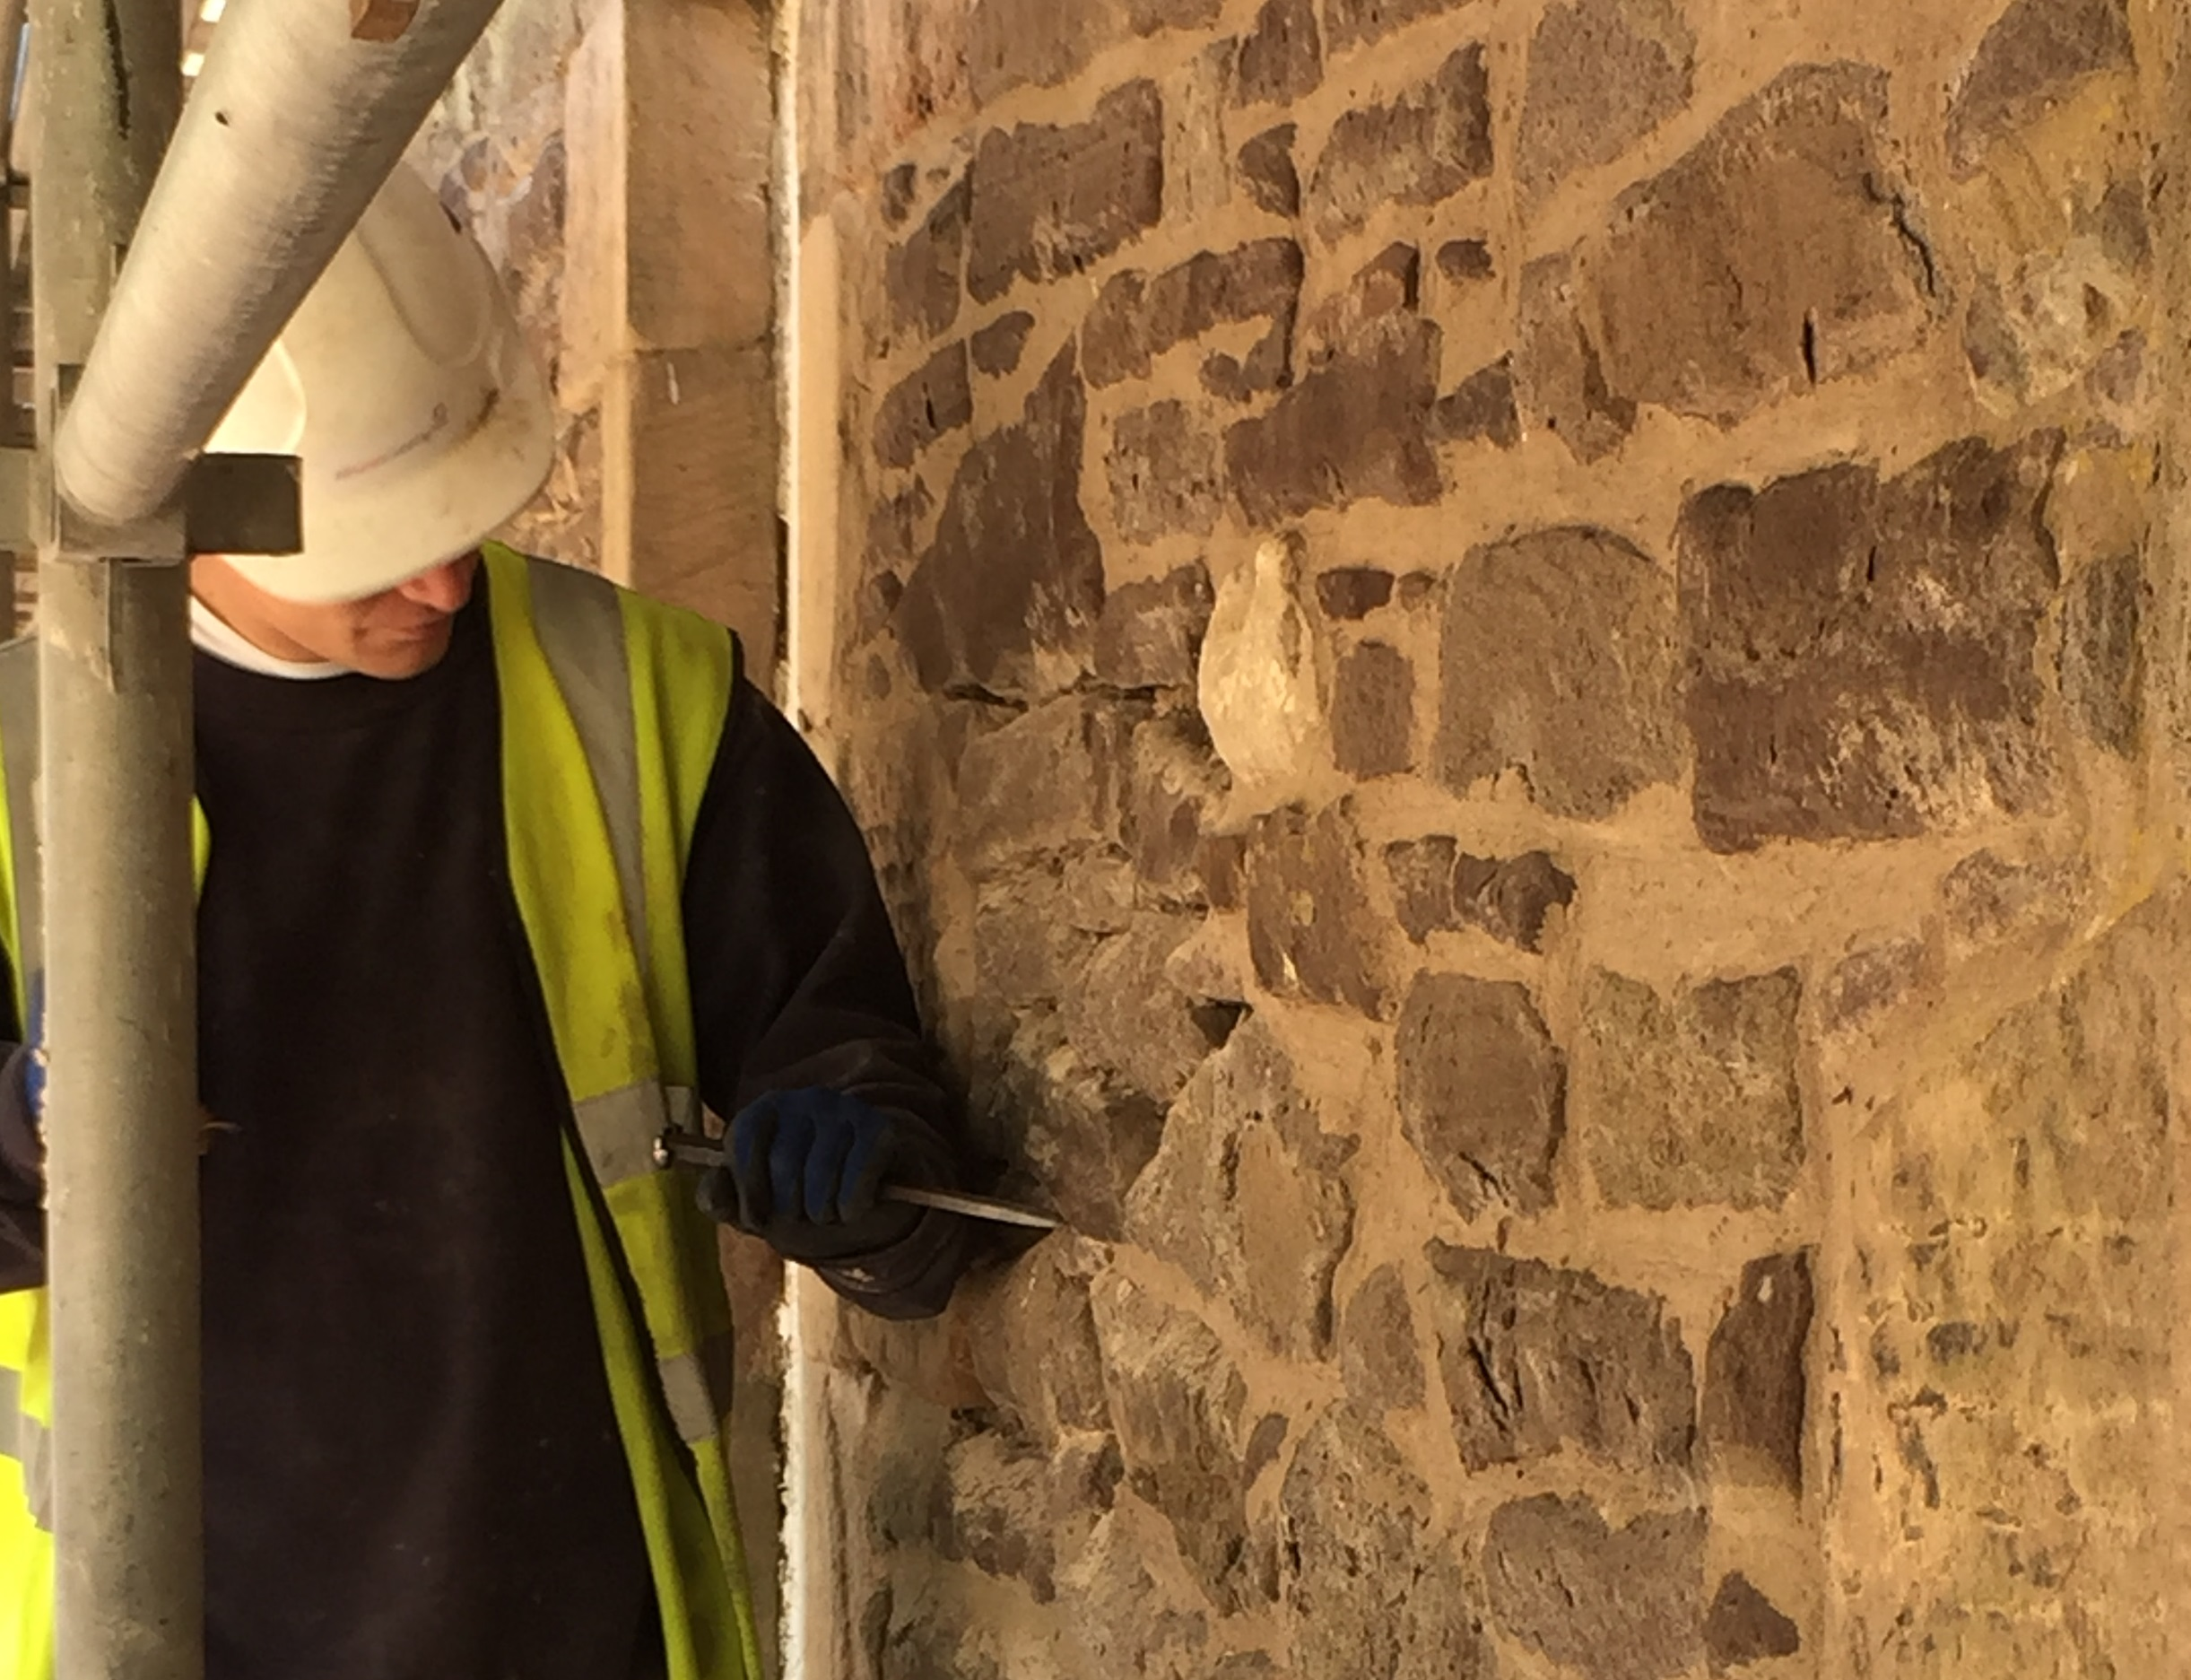 A worker inspecting a stone wall at New Lanark